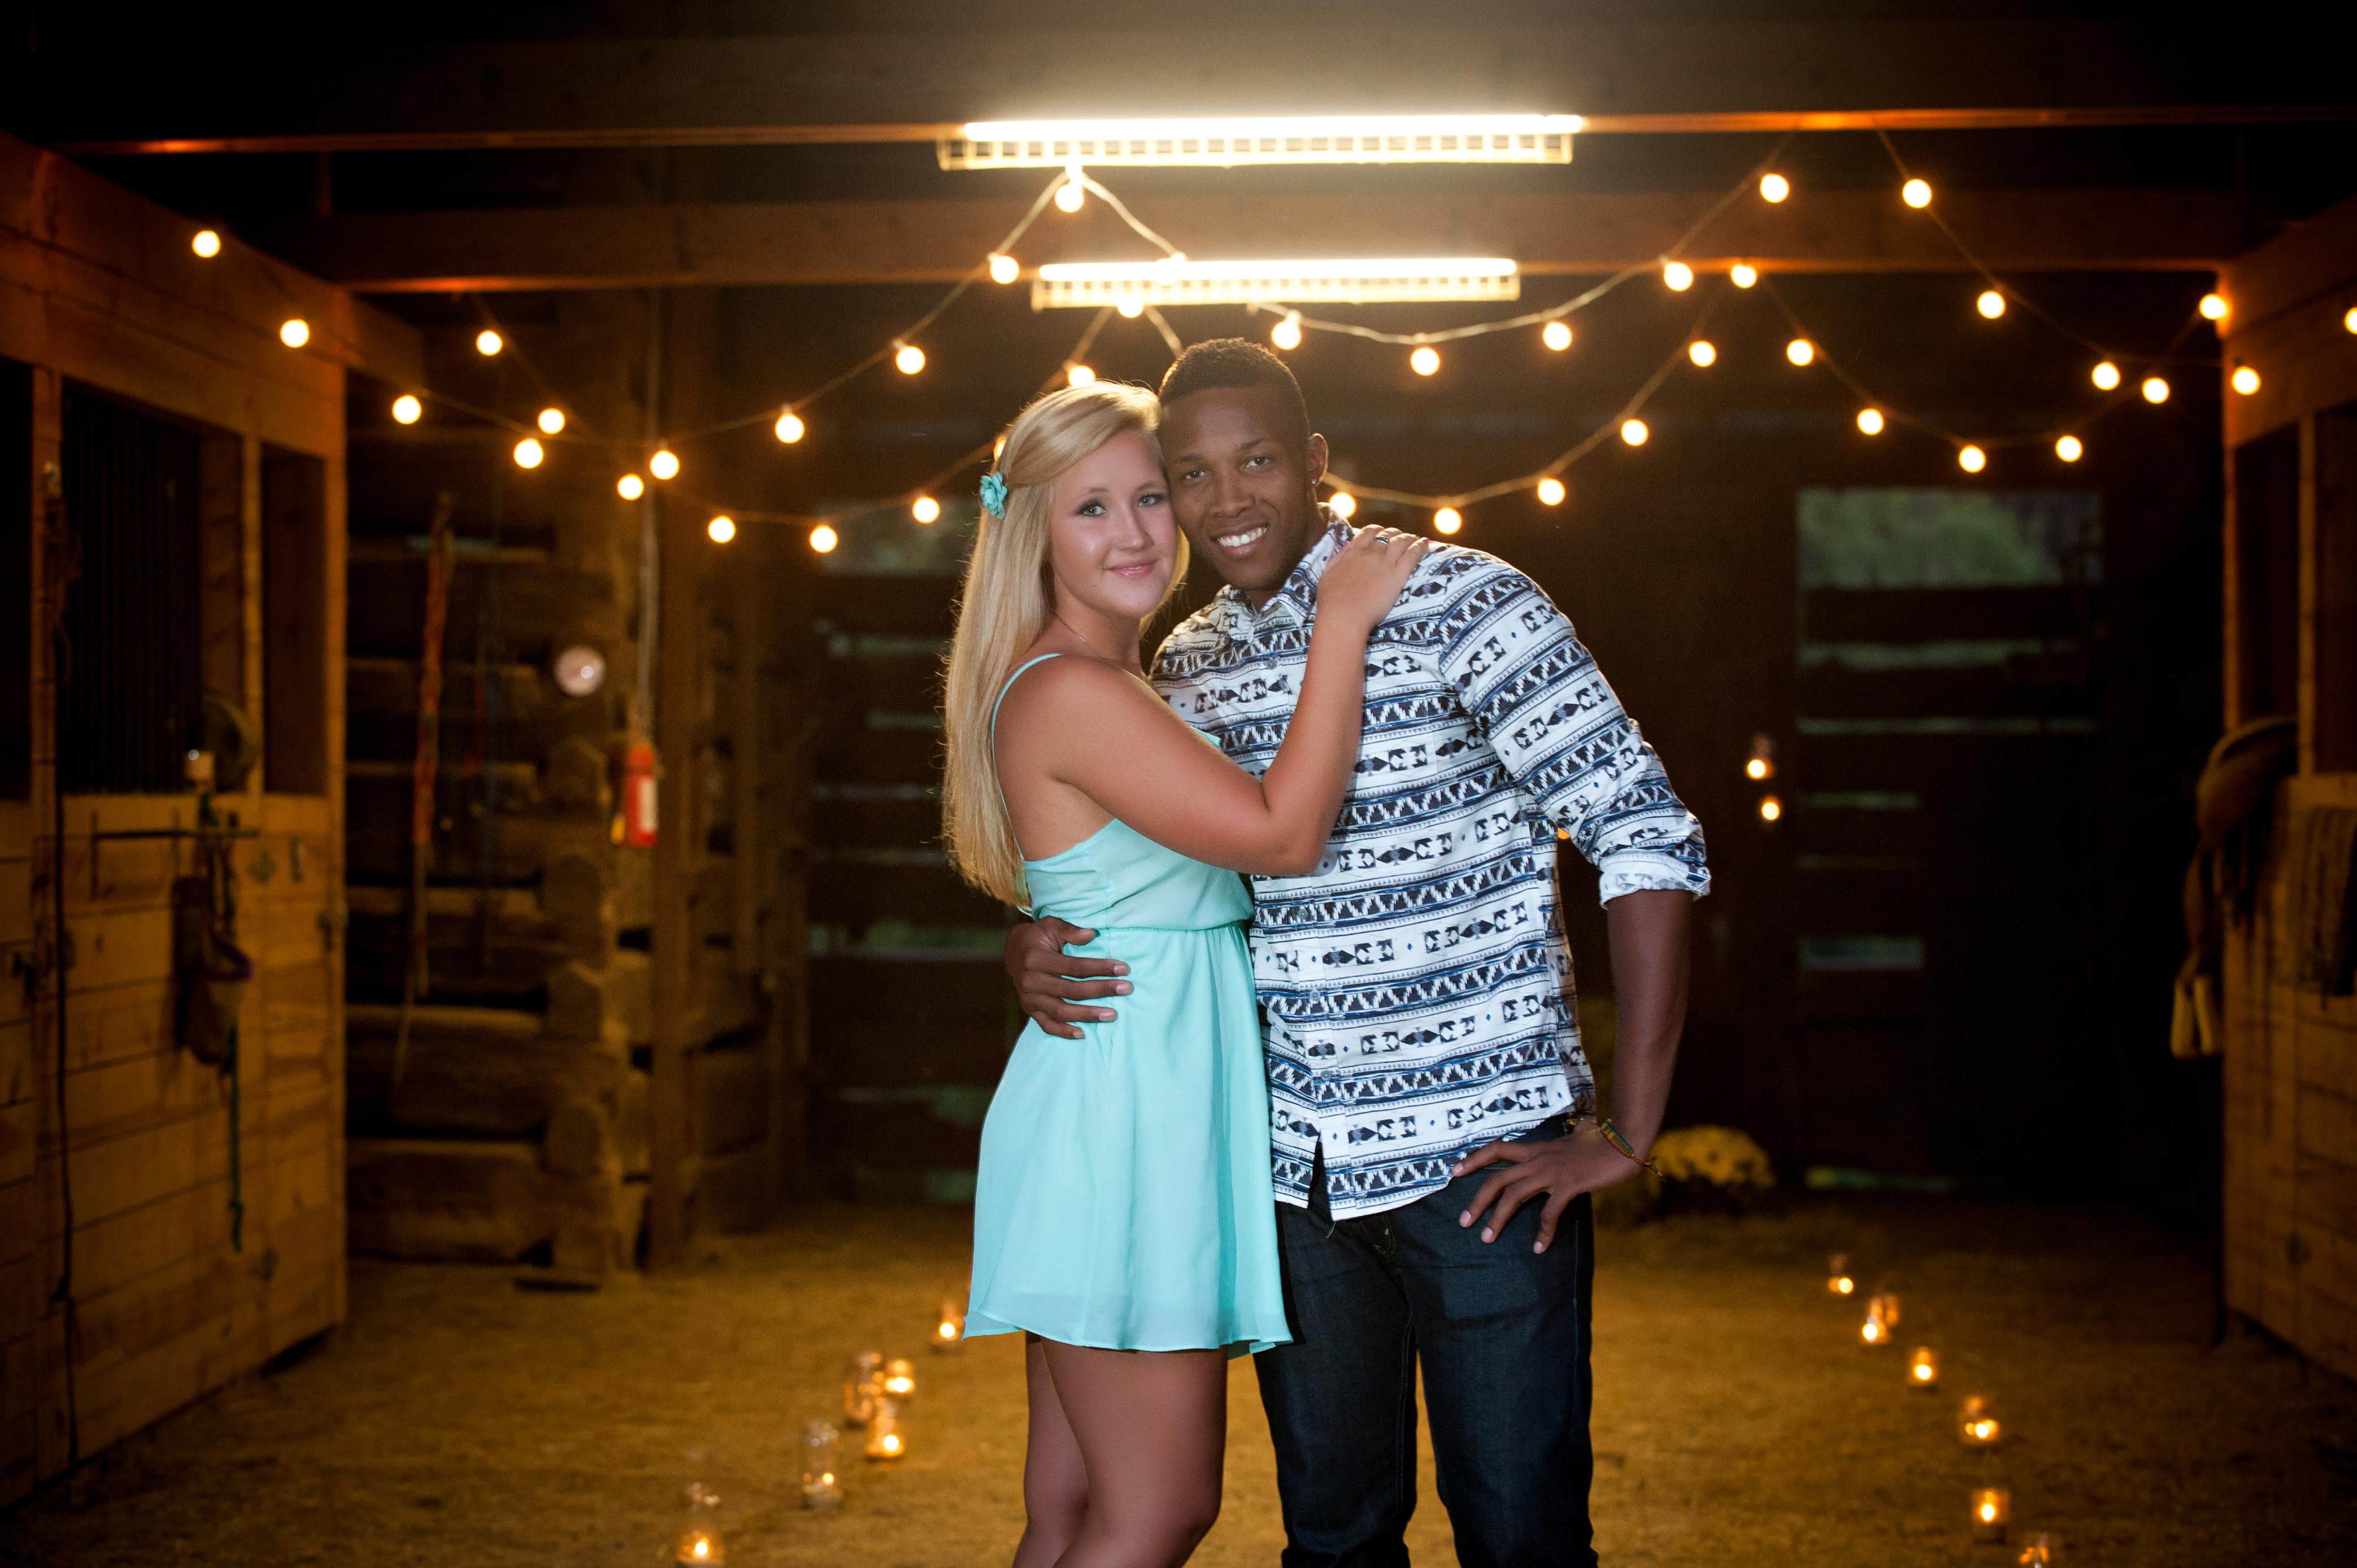 Image 6 of Jessica and De'Angelo | Barn-Style Proposal